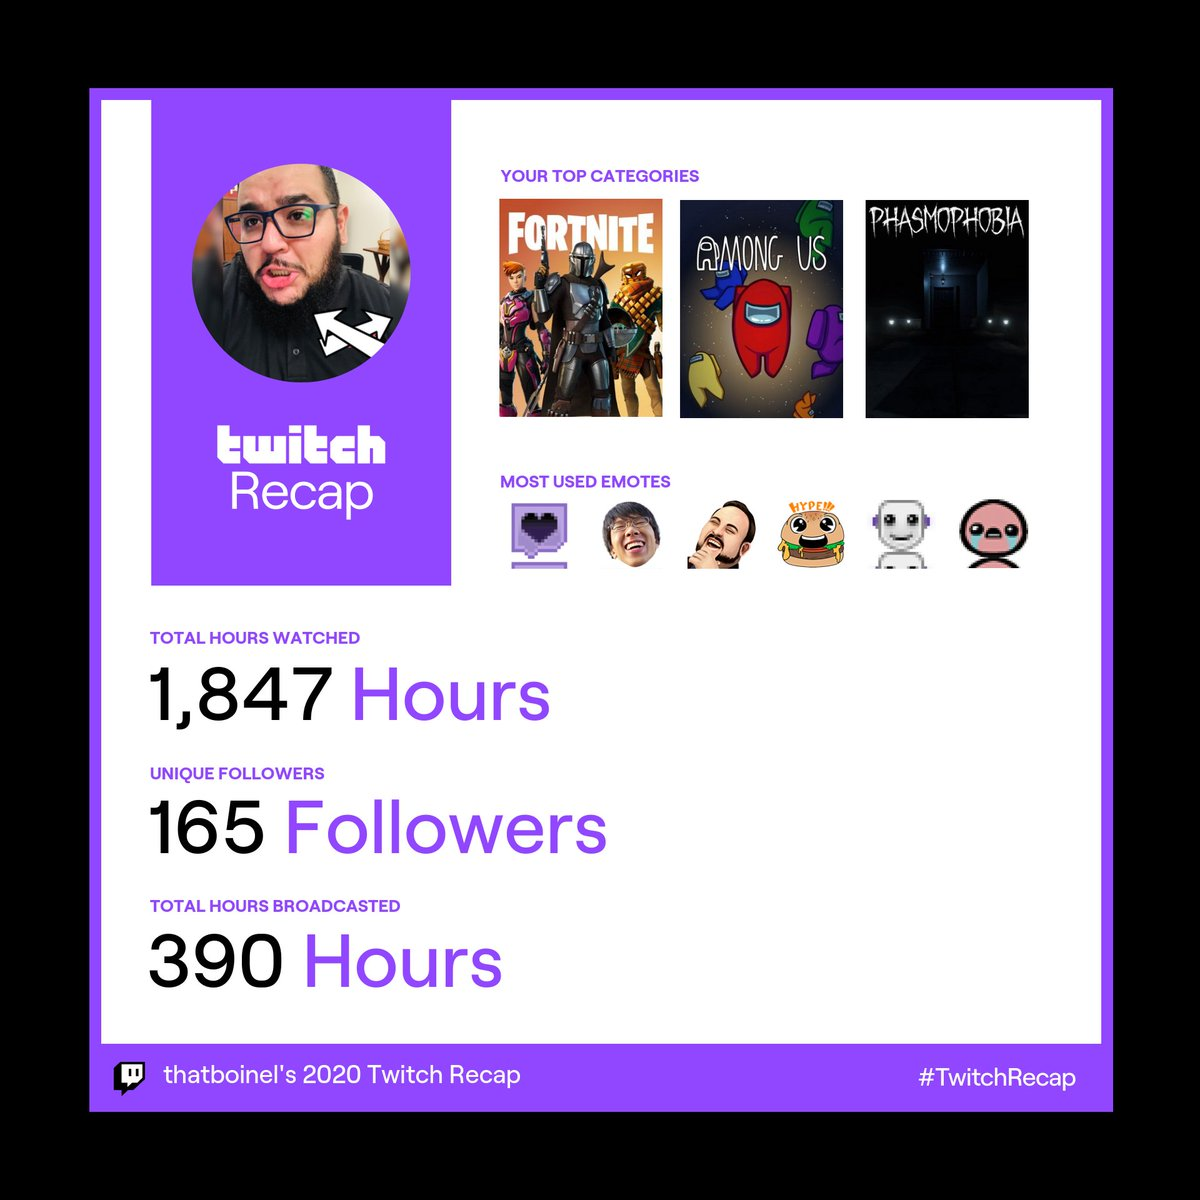 Thank you to those who support me, y'all are mad real! <3 Here's to a great year!   #Twitch #TwitchAffiliate #PathToPartner #ThatBoiNel #NellySkwaad